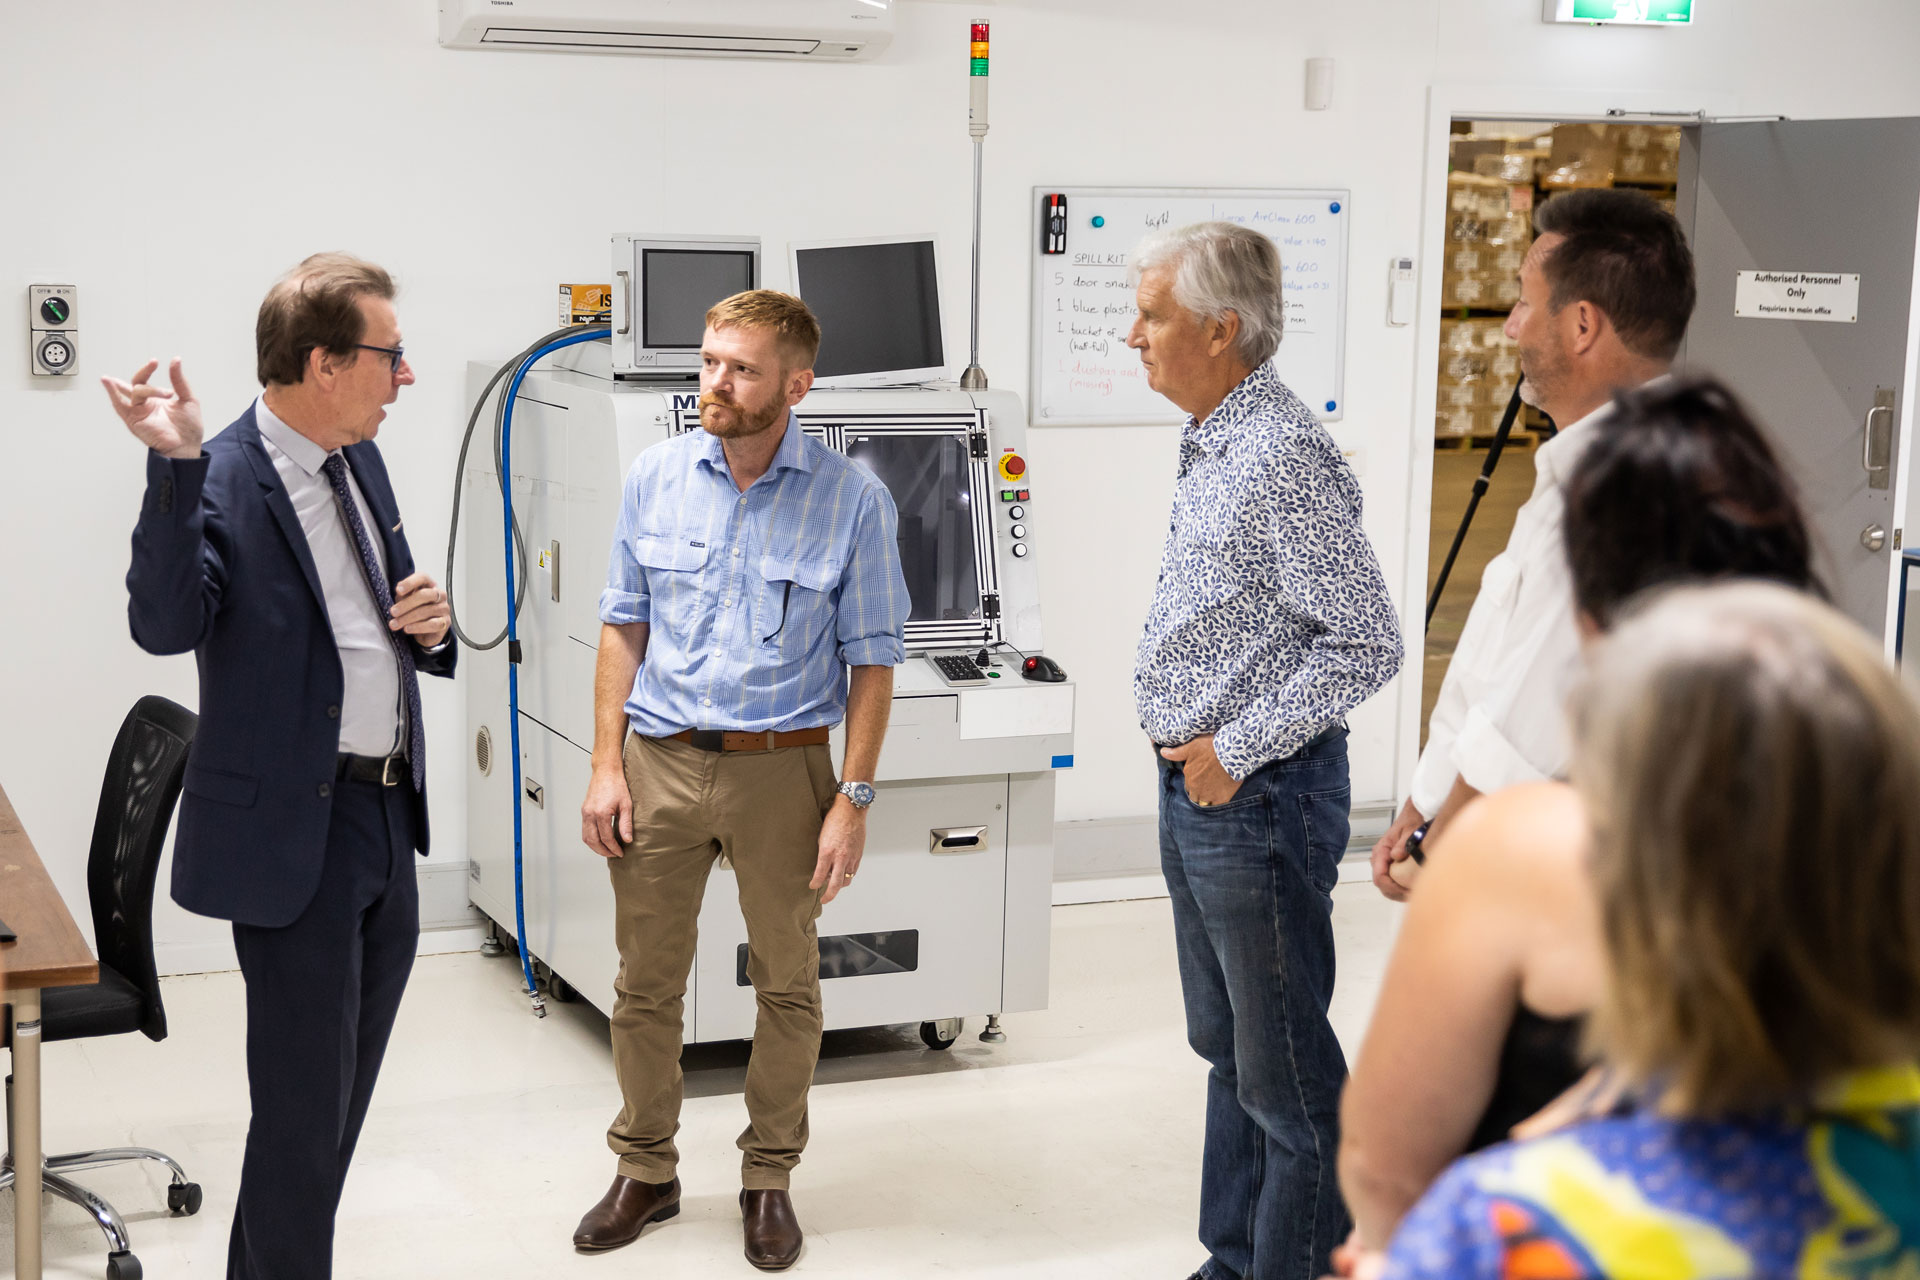 A group talking in a laboratory